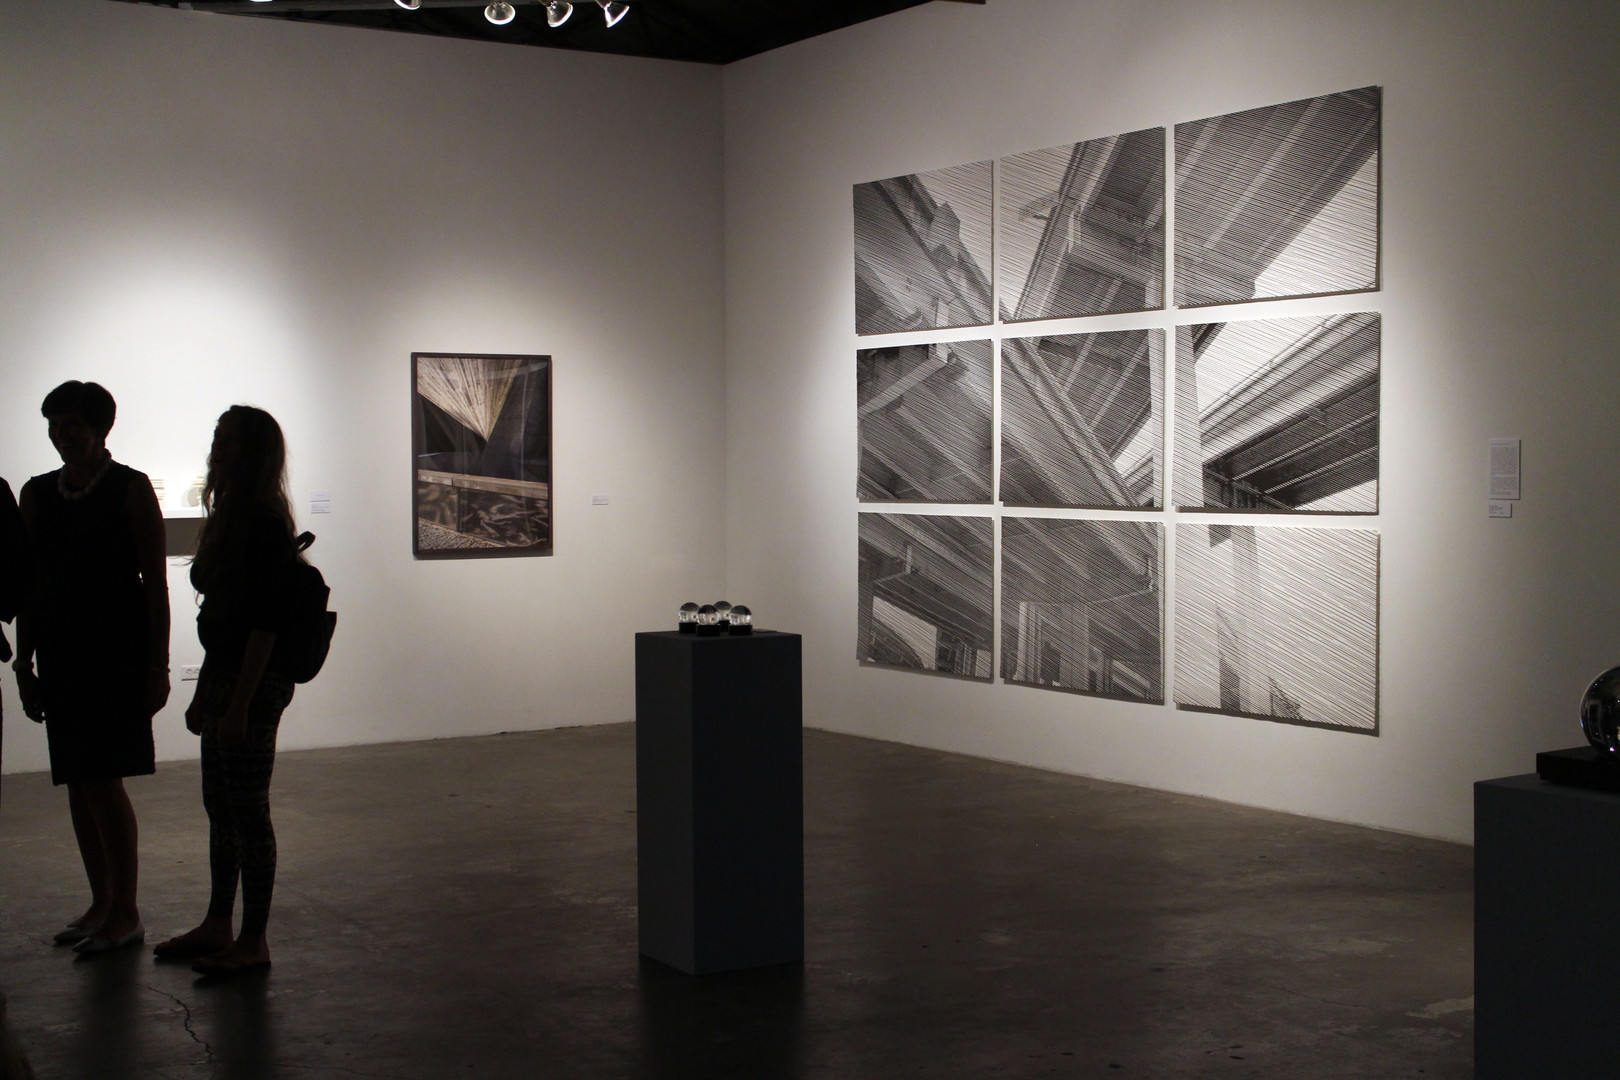 Exhibition: Code and Noise